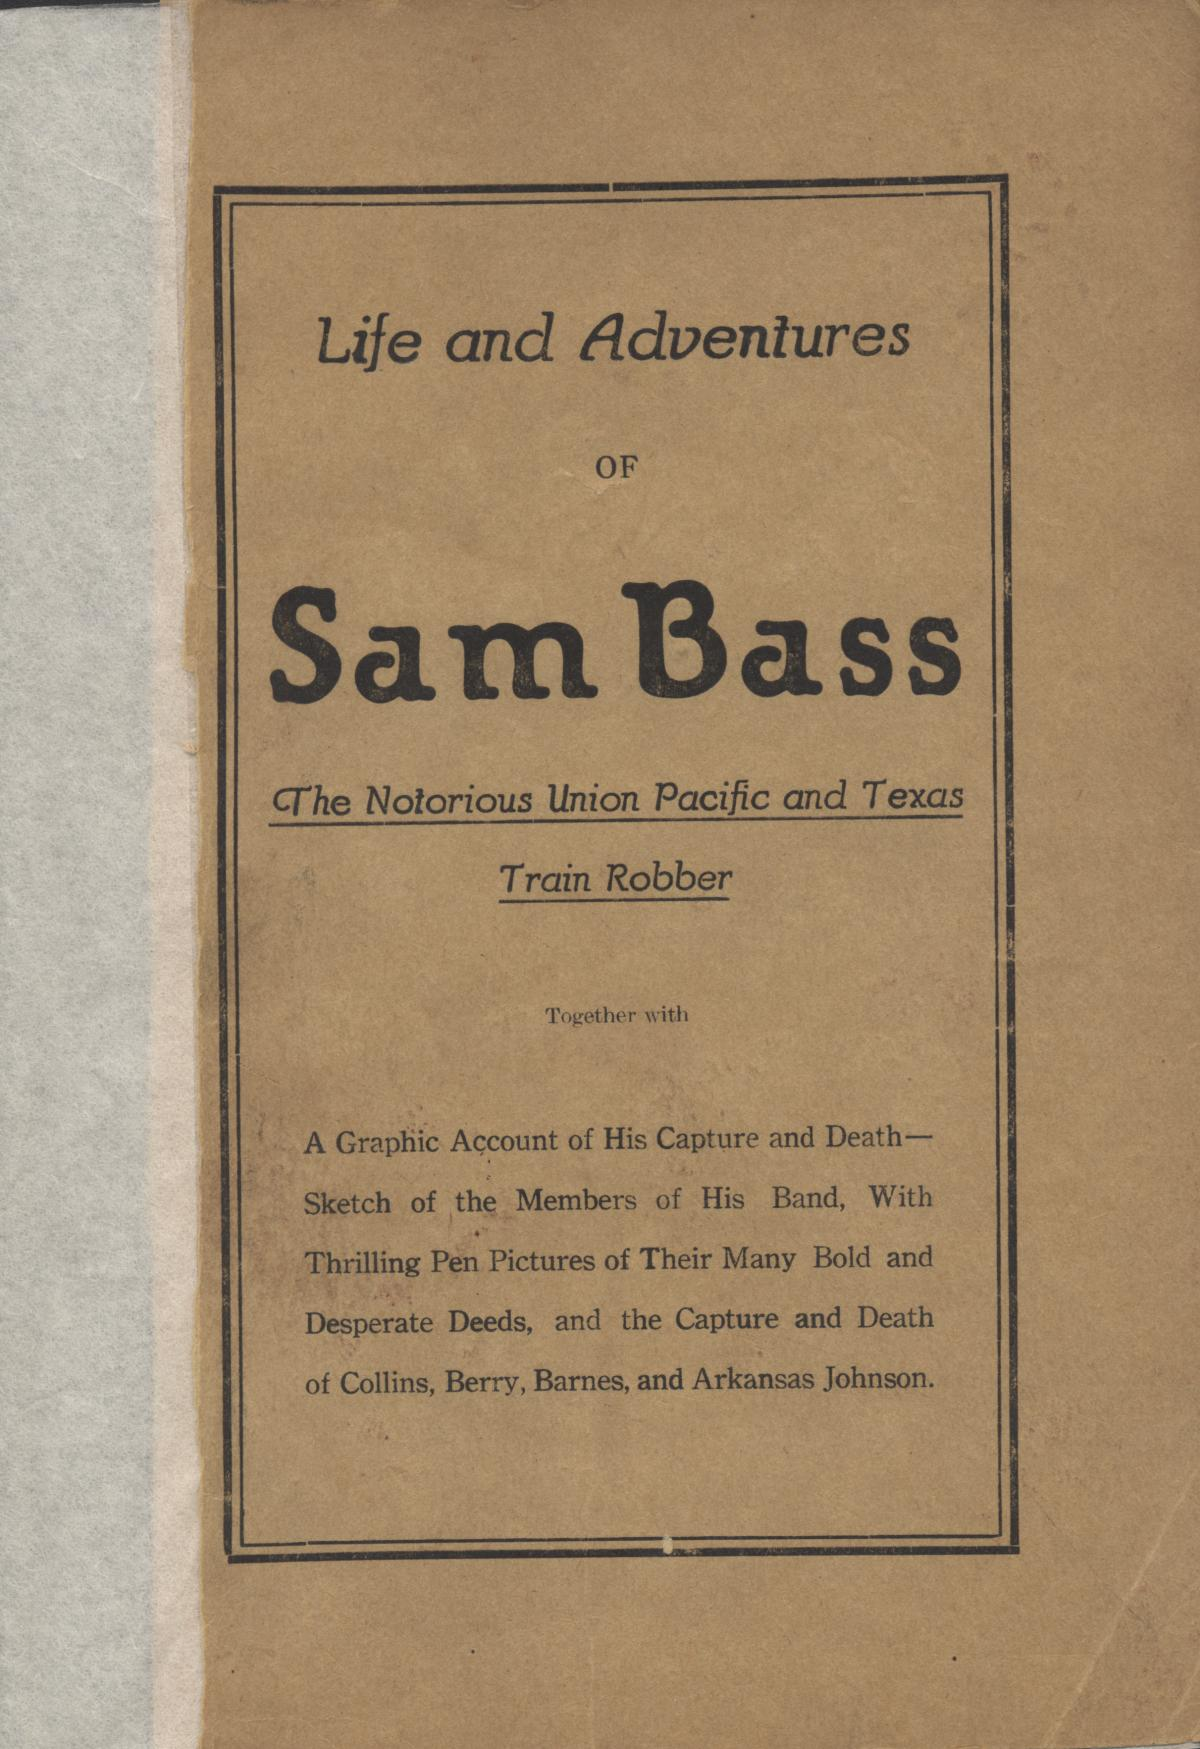 Life and Adventures of Sam Bass, The Notorious Union Pacific and Texas Train Robber: together with A Graphic Account of His Capture and Death--Sketch of the Members of His Band, With Thrilling Pen Pictures of Their Many Bold and Desperate Deeds, and the Capture and Death of Collins, Berry, Barnes, and Arkansas Johnson                                                                                                      Front Cover